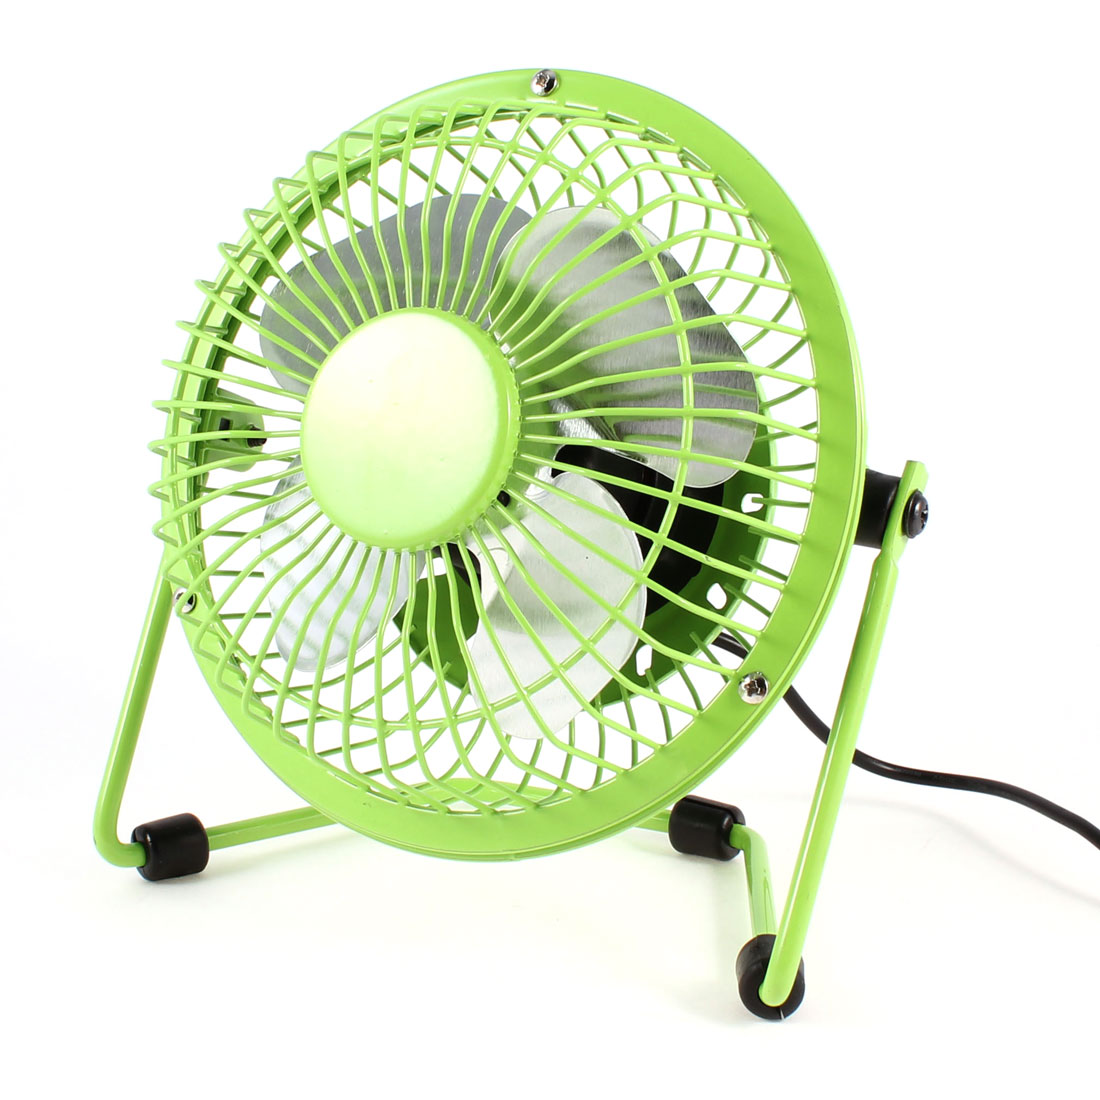 USB Plug Metal Direction Adjustment PC Computer Cooling Fan Green